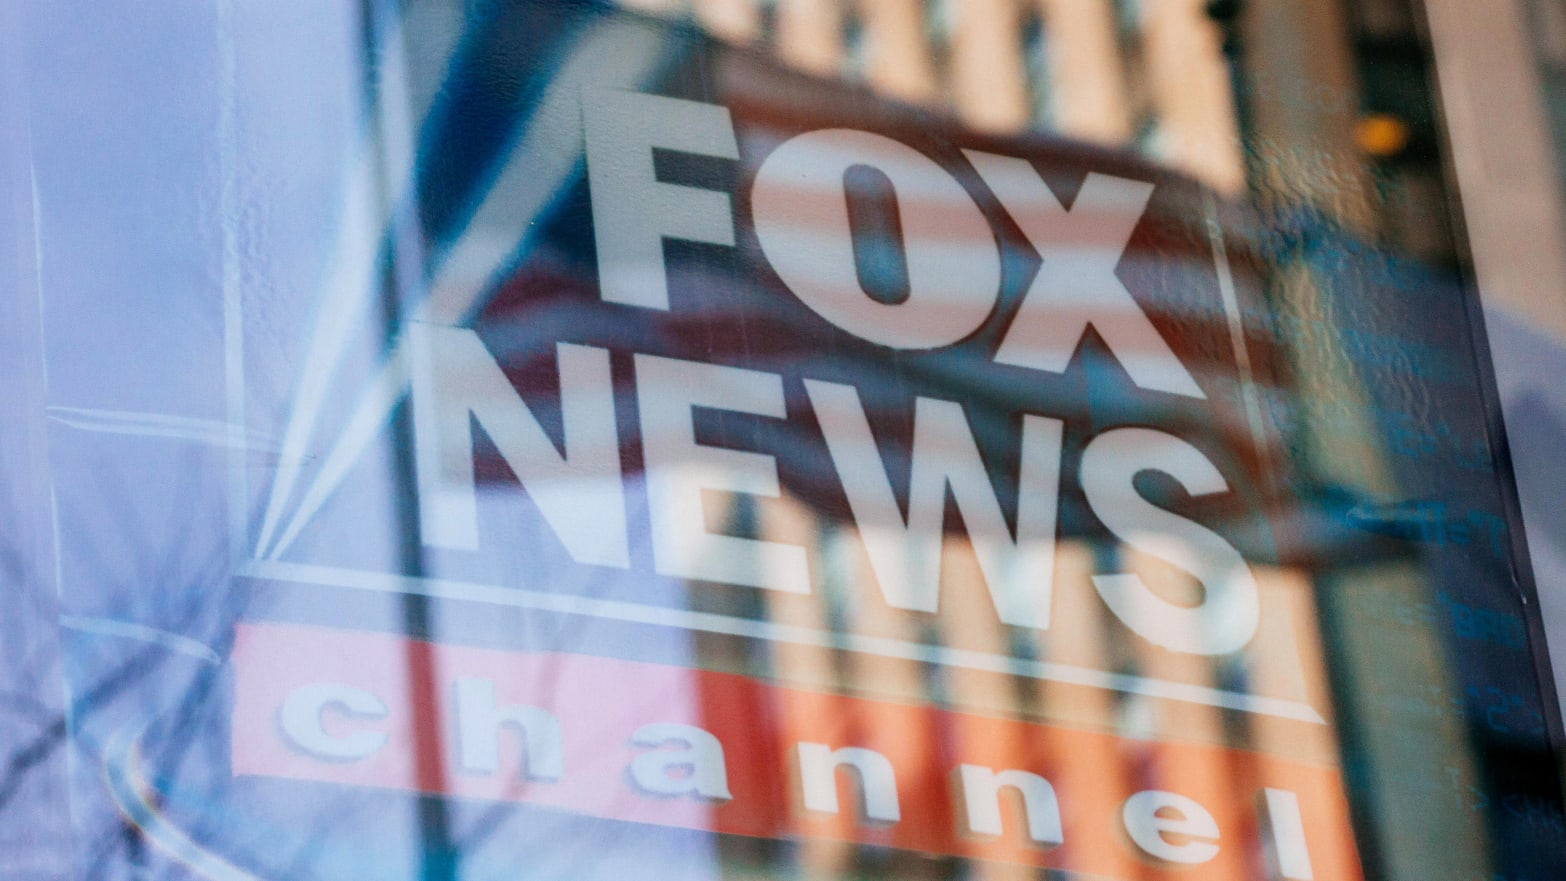 National Association of Hispanic Journalists Cuts Ties With Fox News Over Immigrant 'Invasion' Rhetoric